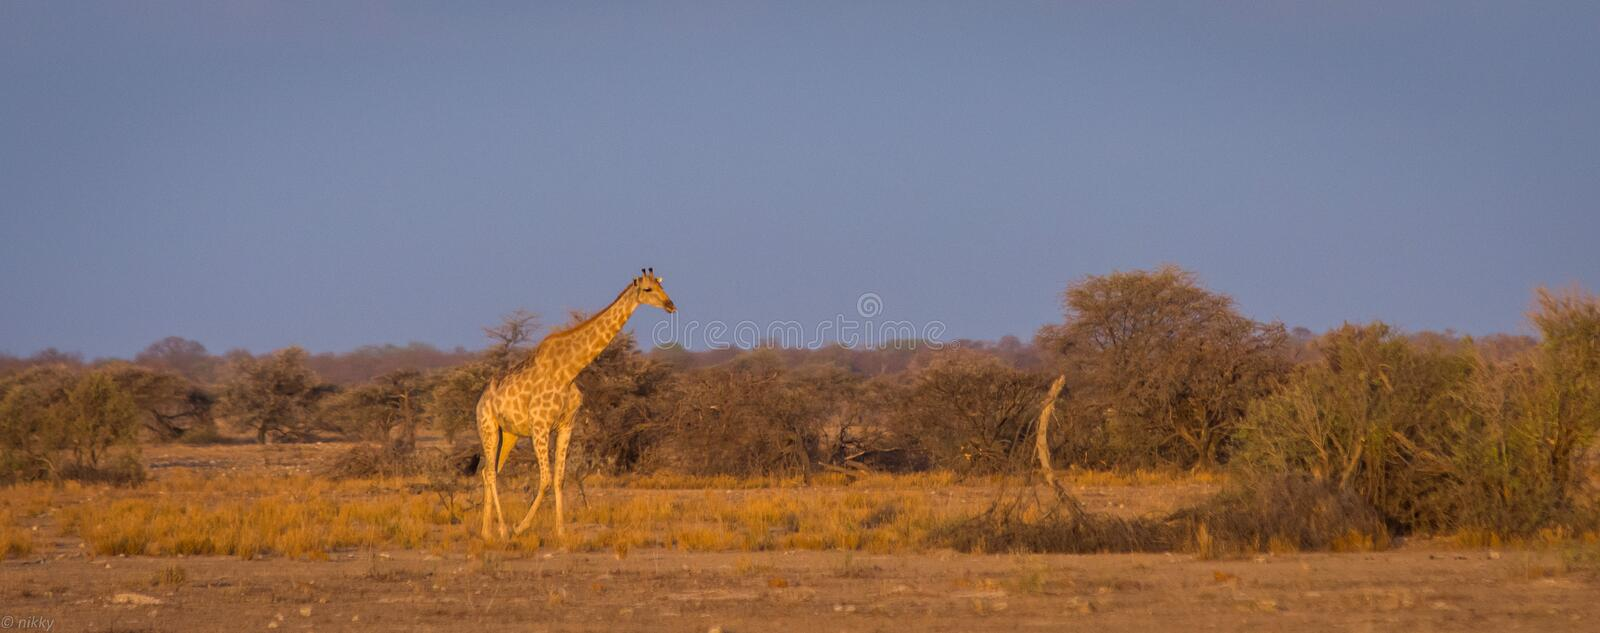 Roaming giraffe on the African savannah. At dawn with trees and shrubs stock images